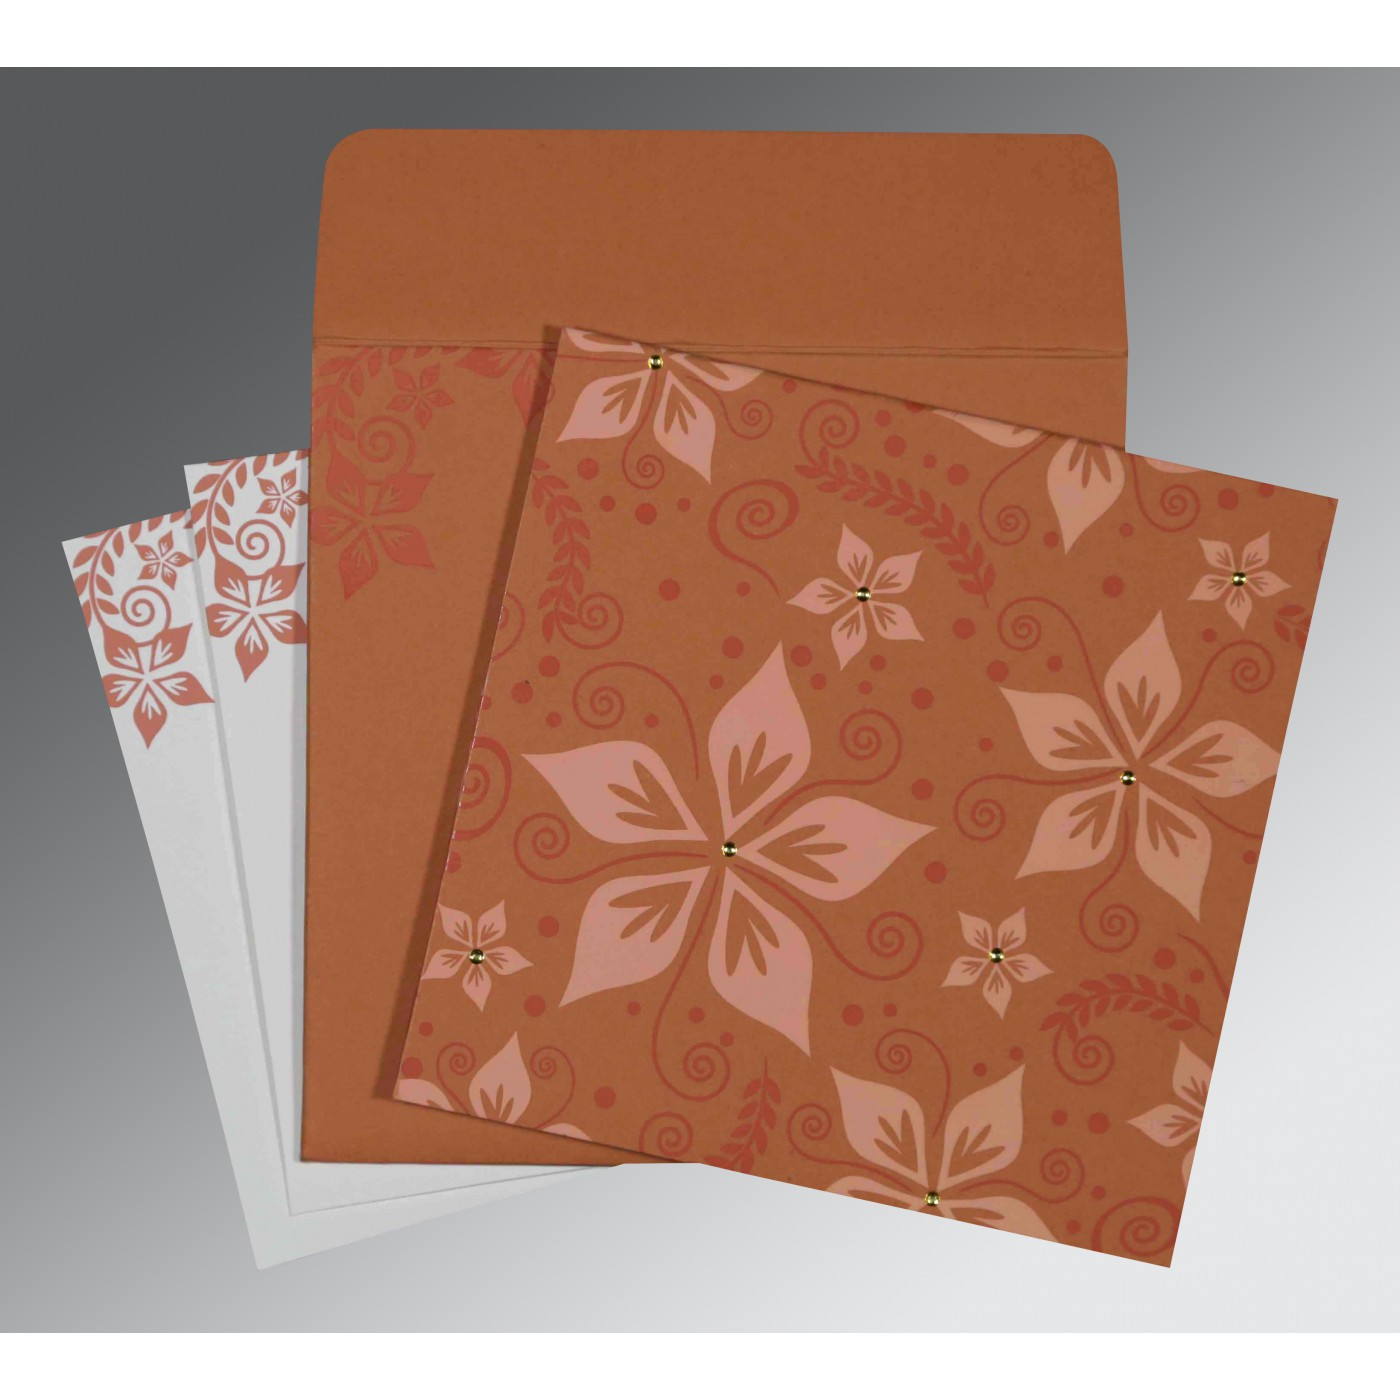 LIGHT BROWN MATTE FLORAL THEMED - SCREEN PRINTED WEDDING INVITATION : C-8240H - 123WeddingCards